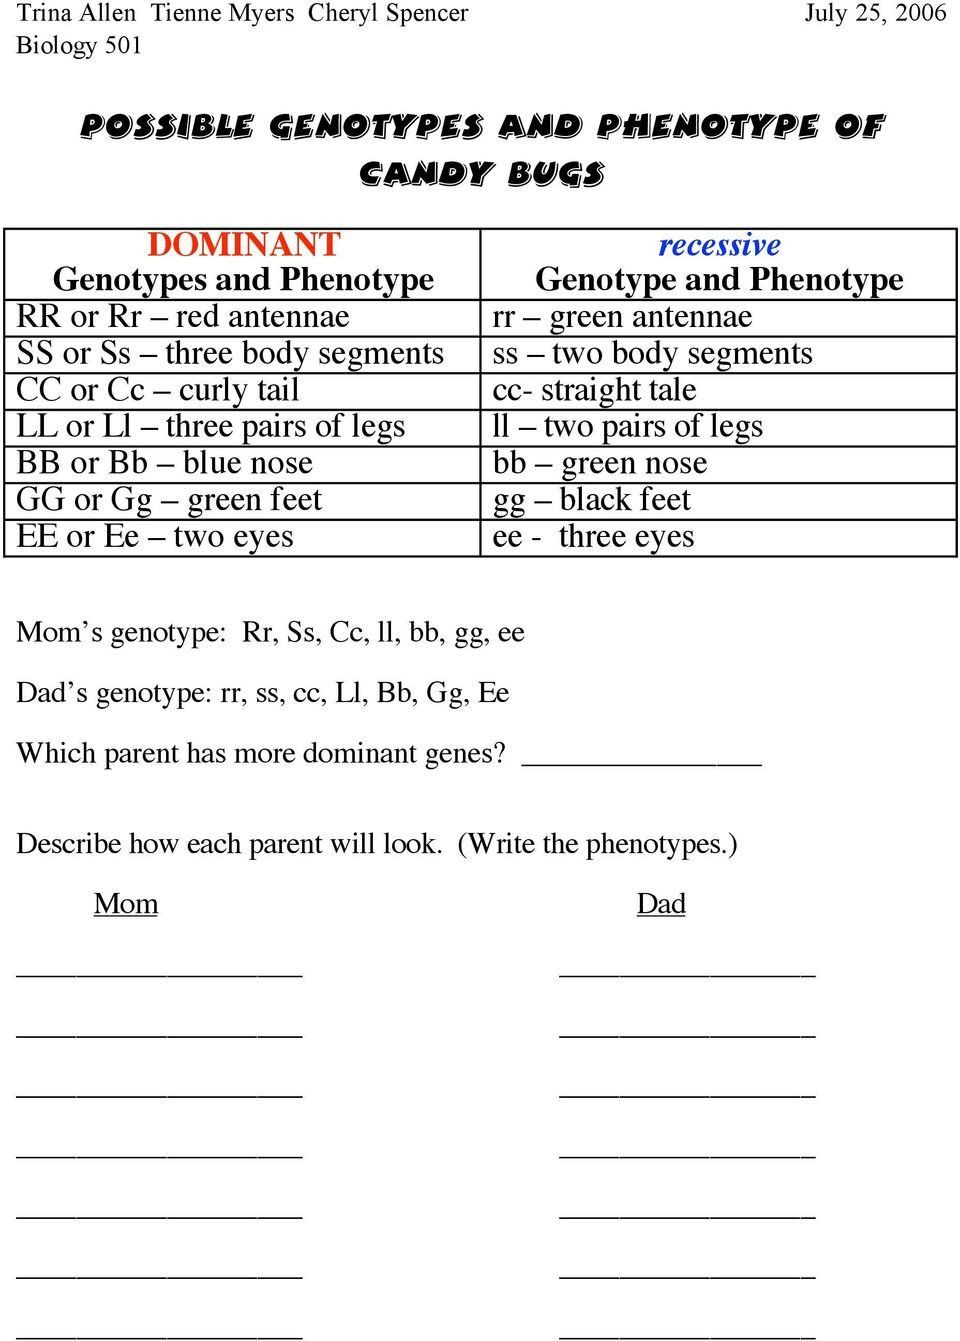 Genotypes and Phenotypes Worksheet Answers Lesson Plan